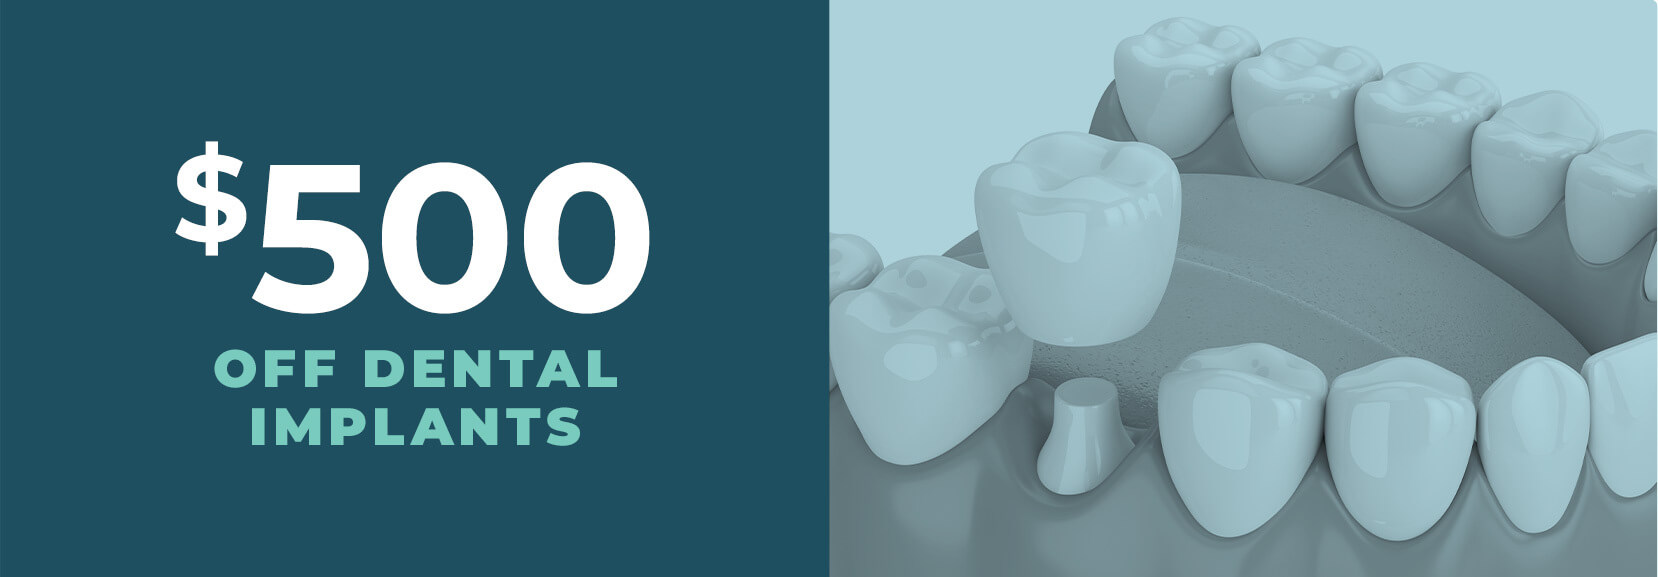 $500 OFF Dental Implants